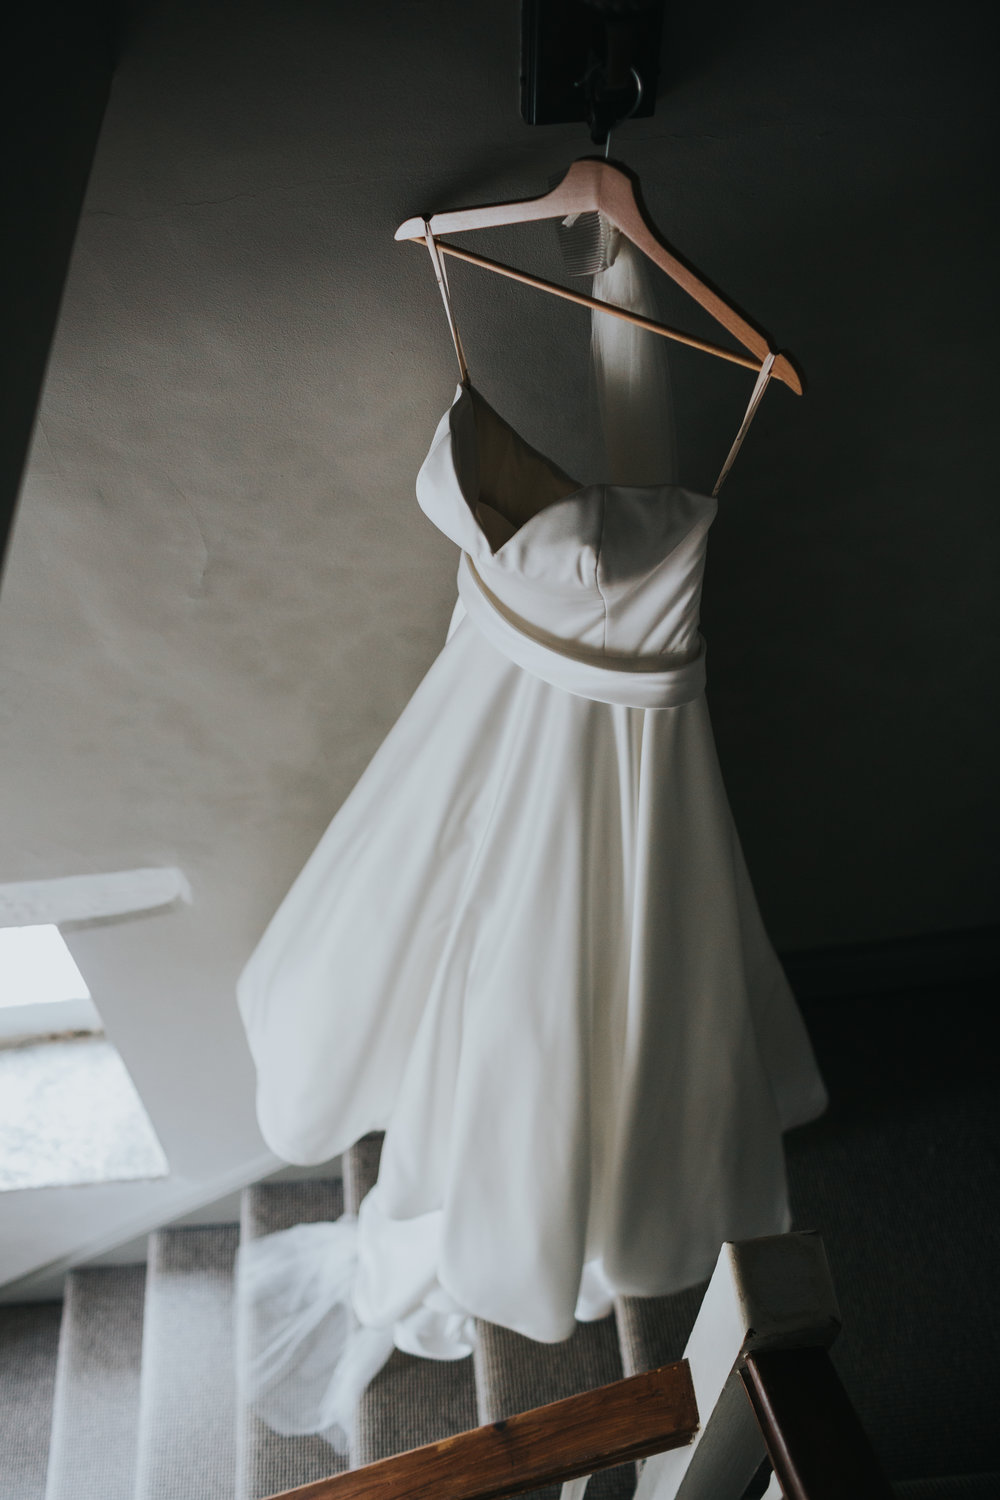 Wedding Dress hanging in the hall way.